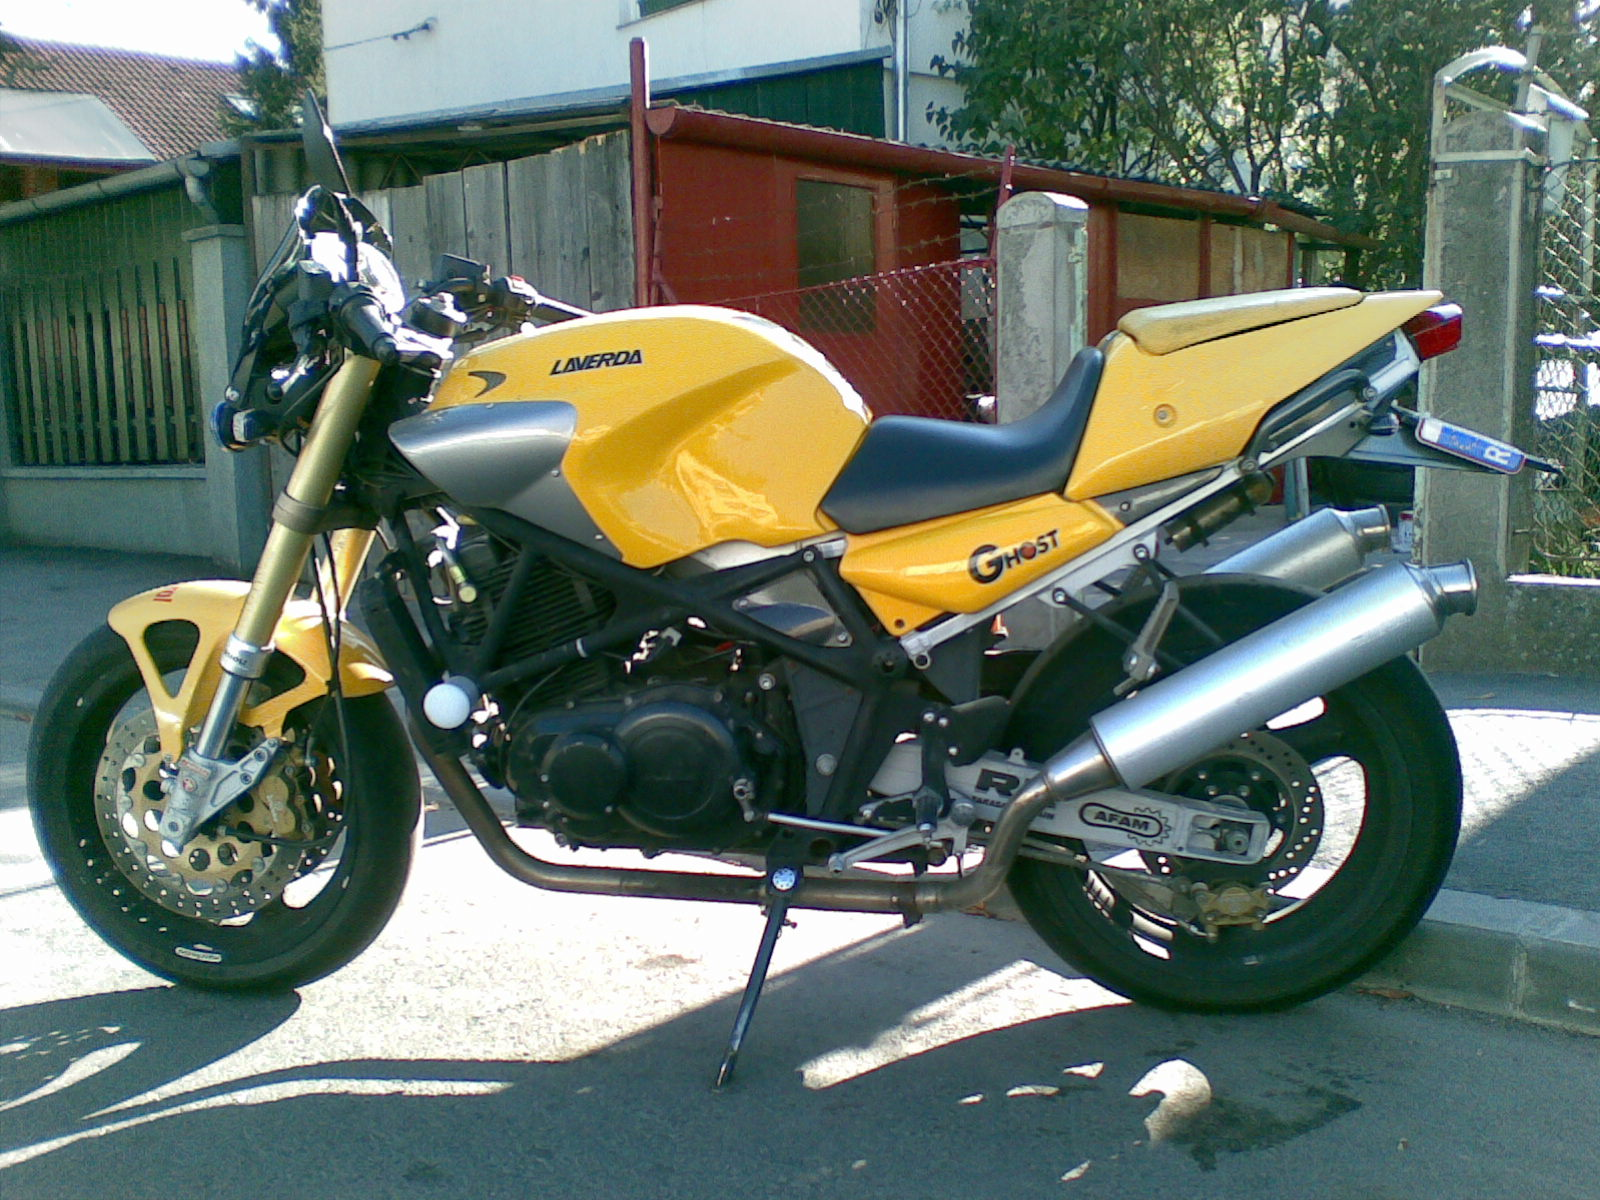 Laverda 650 Ghost Strike images #101811